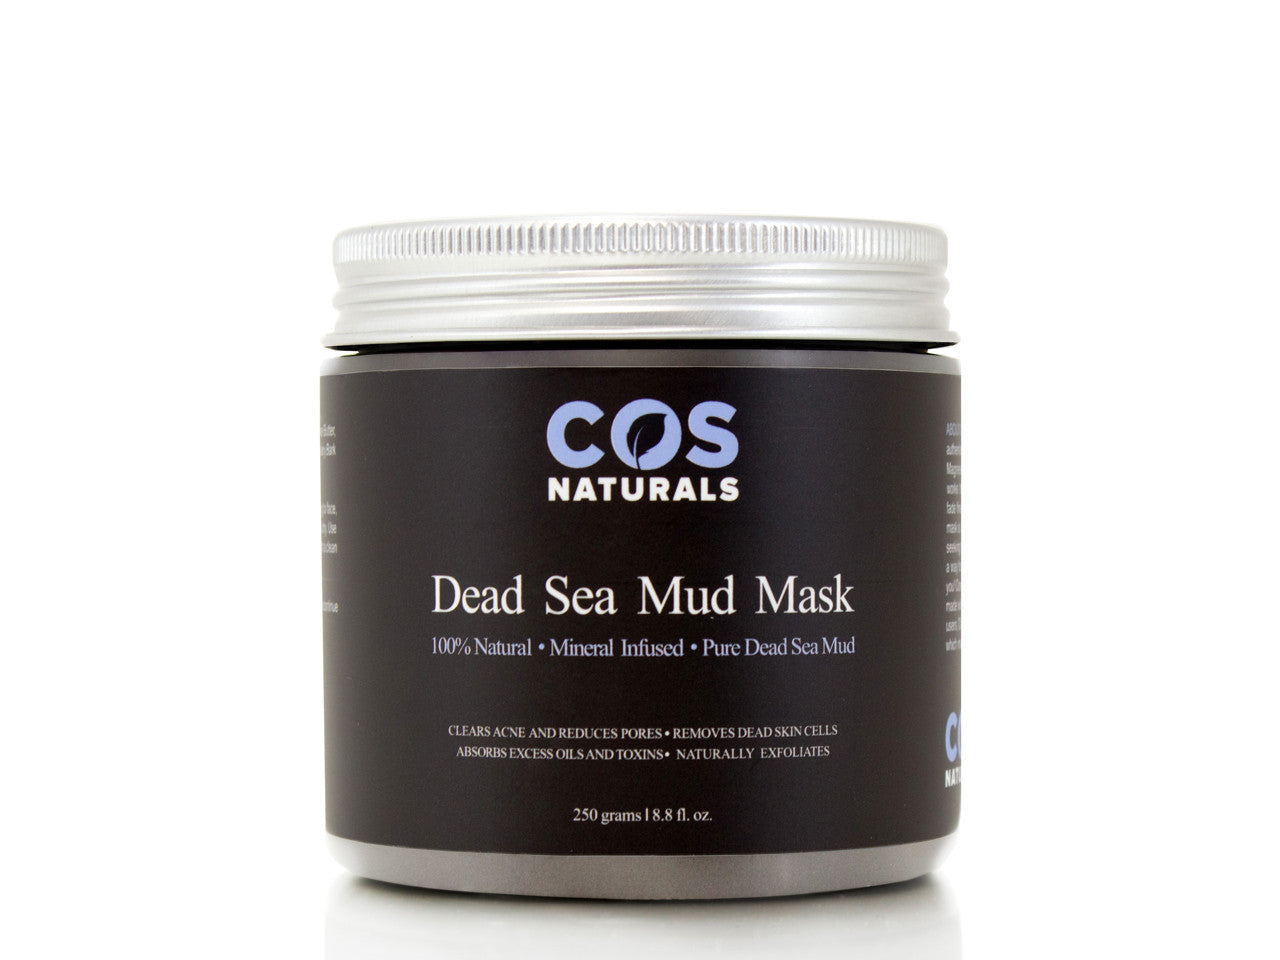 Dead Sea Mud Mask For Face And Body, 8.8 oz